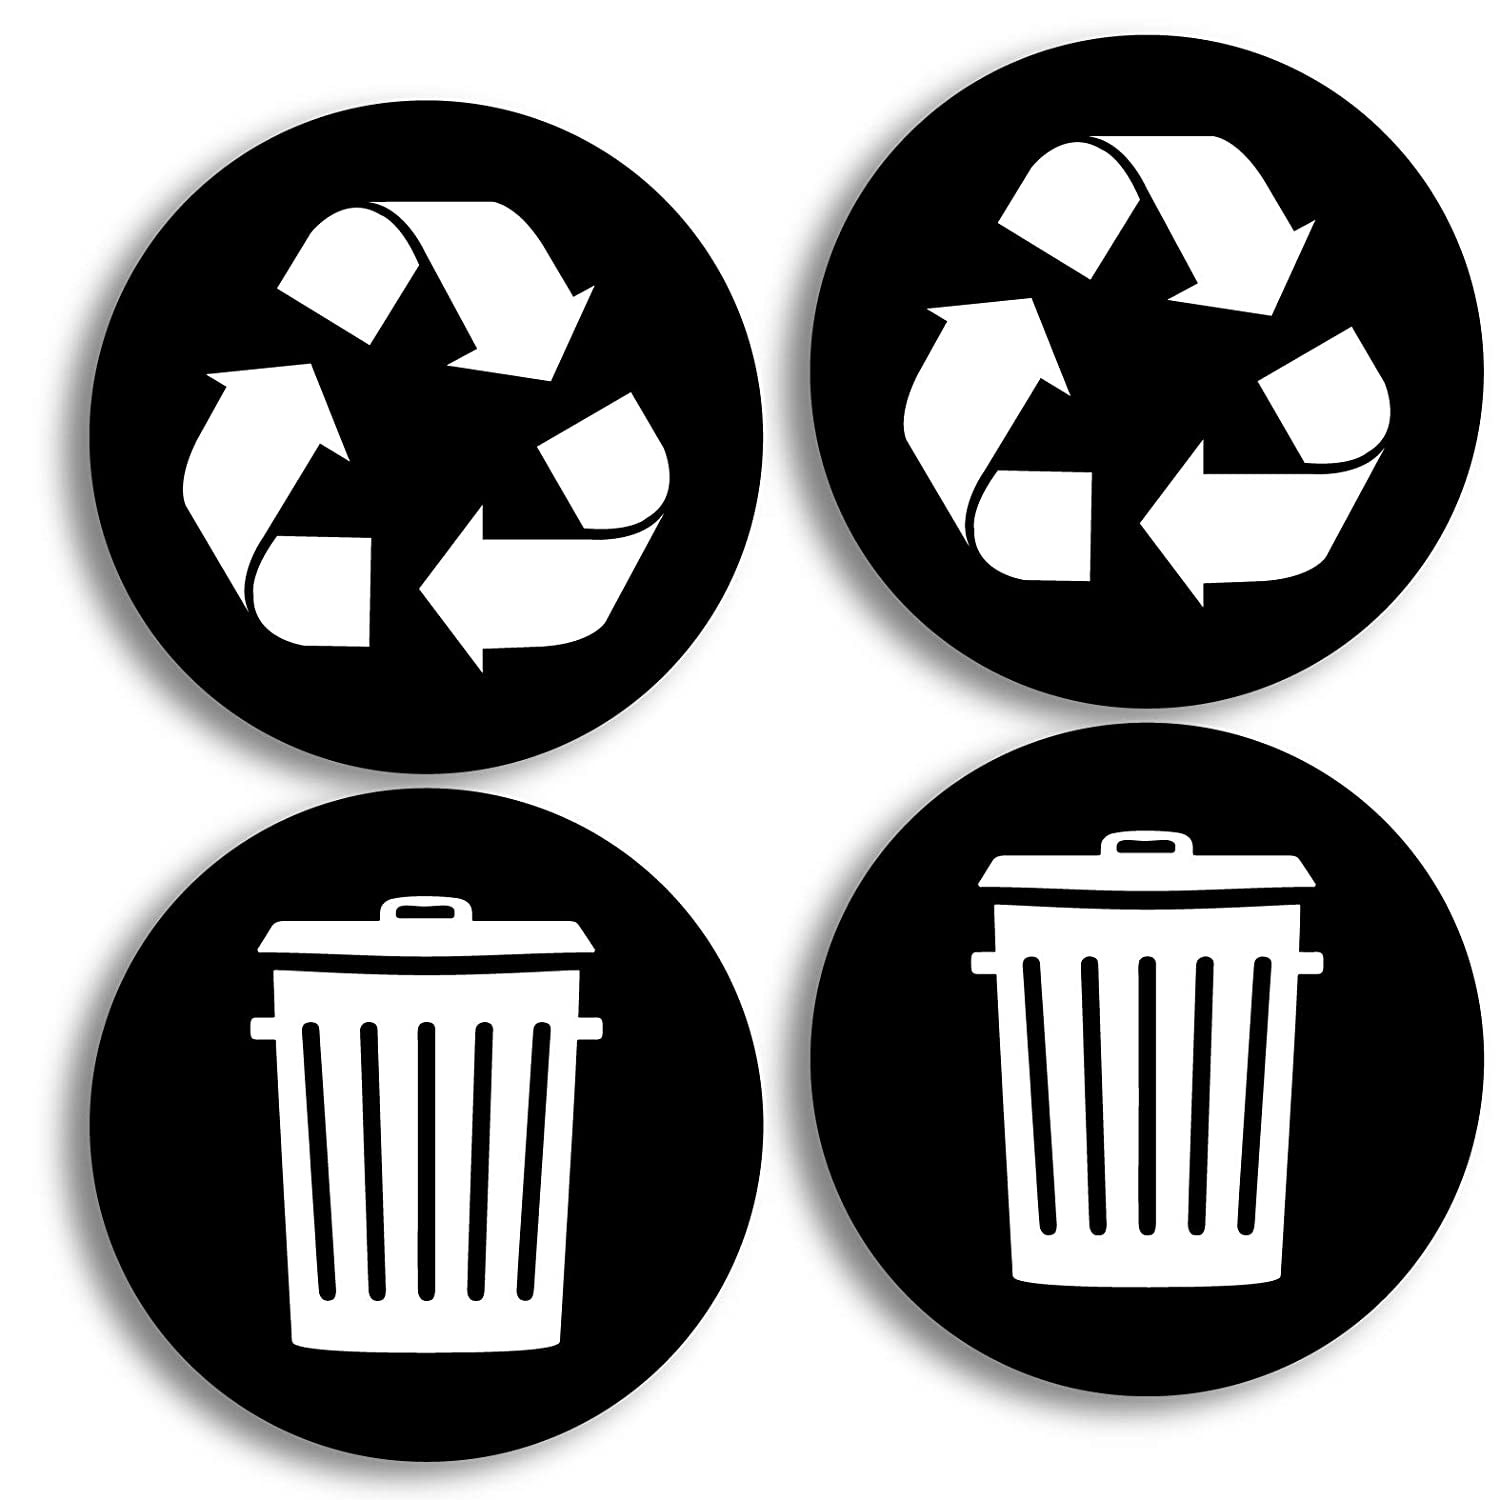 Recycle and trash logo stickers 4 pack 4in x 4in organize trash for metal or plastic garbage cans containers and bins indoor outdoor home